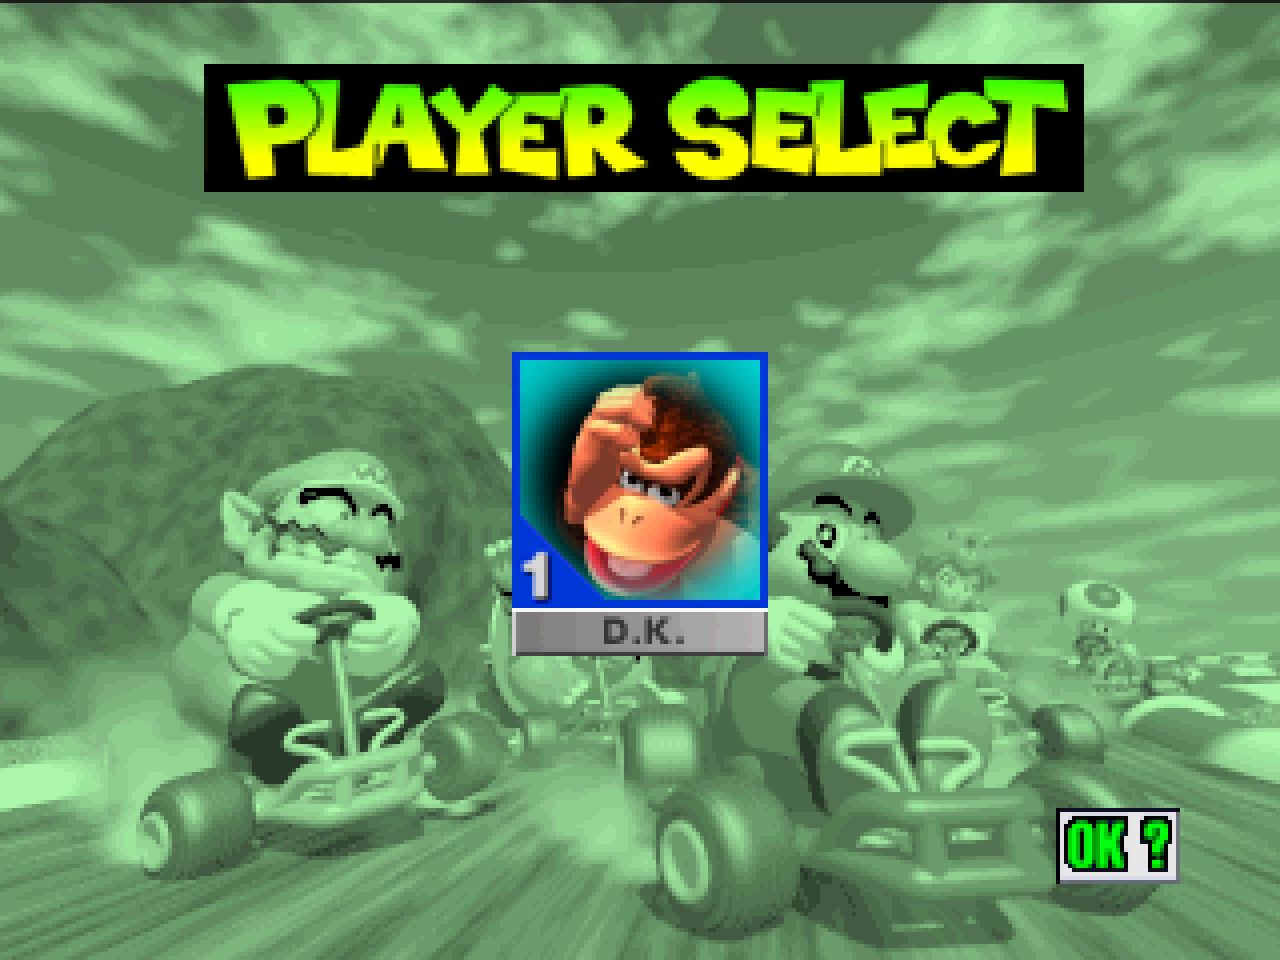 https://s3.eu-west-3.amazonaws.com/games.anthony-dessalles.com/Mario Kart 64 N64 2020 - Screenshots/Mario Kart 64-201118-215756.png